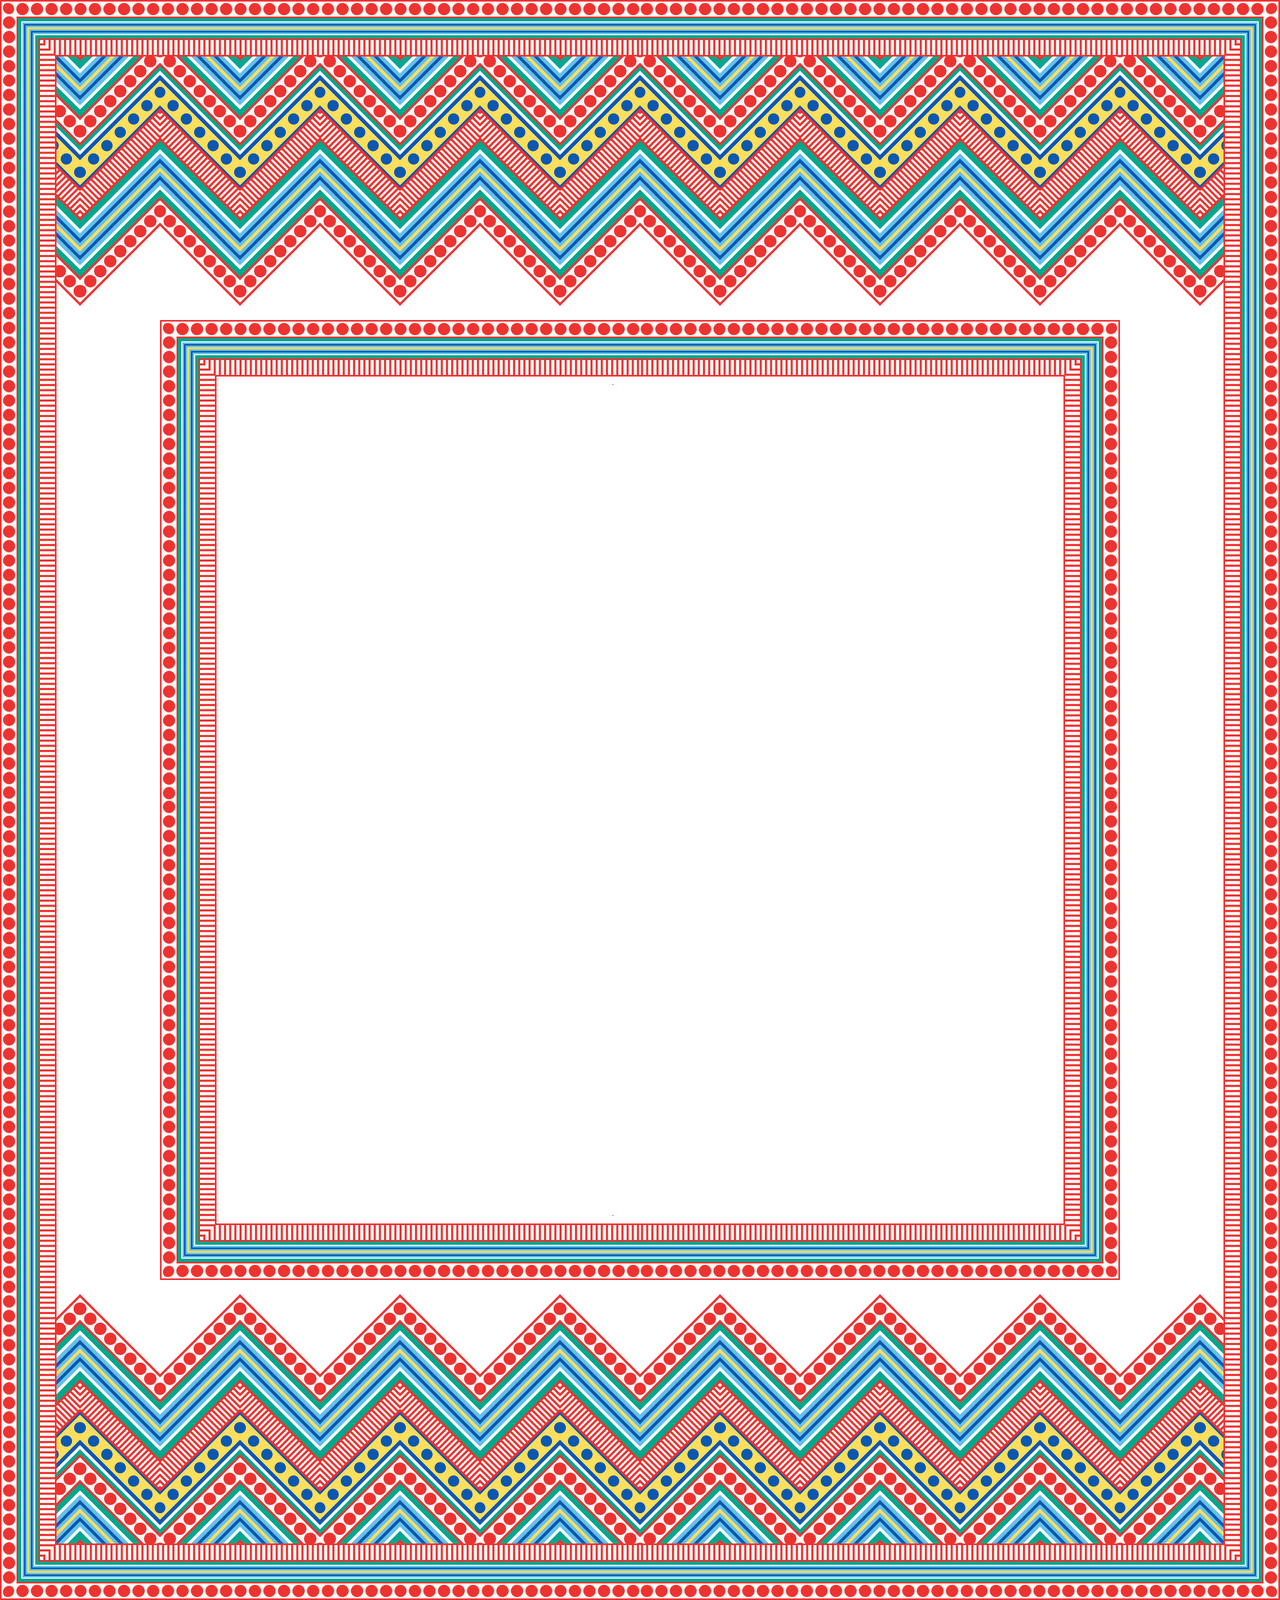 Scrapbook ideas printable - Feel Free To Use The Blank Page As Stationary In Scrapbook Layouts It S 8x10 Inches To Add Your Own Quote Or In Any Crafty Use